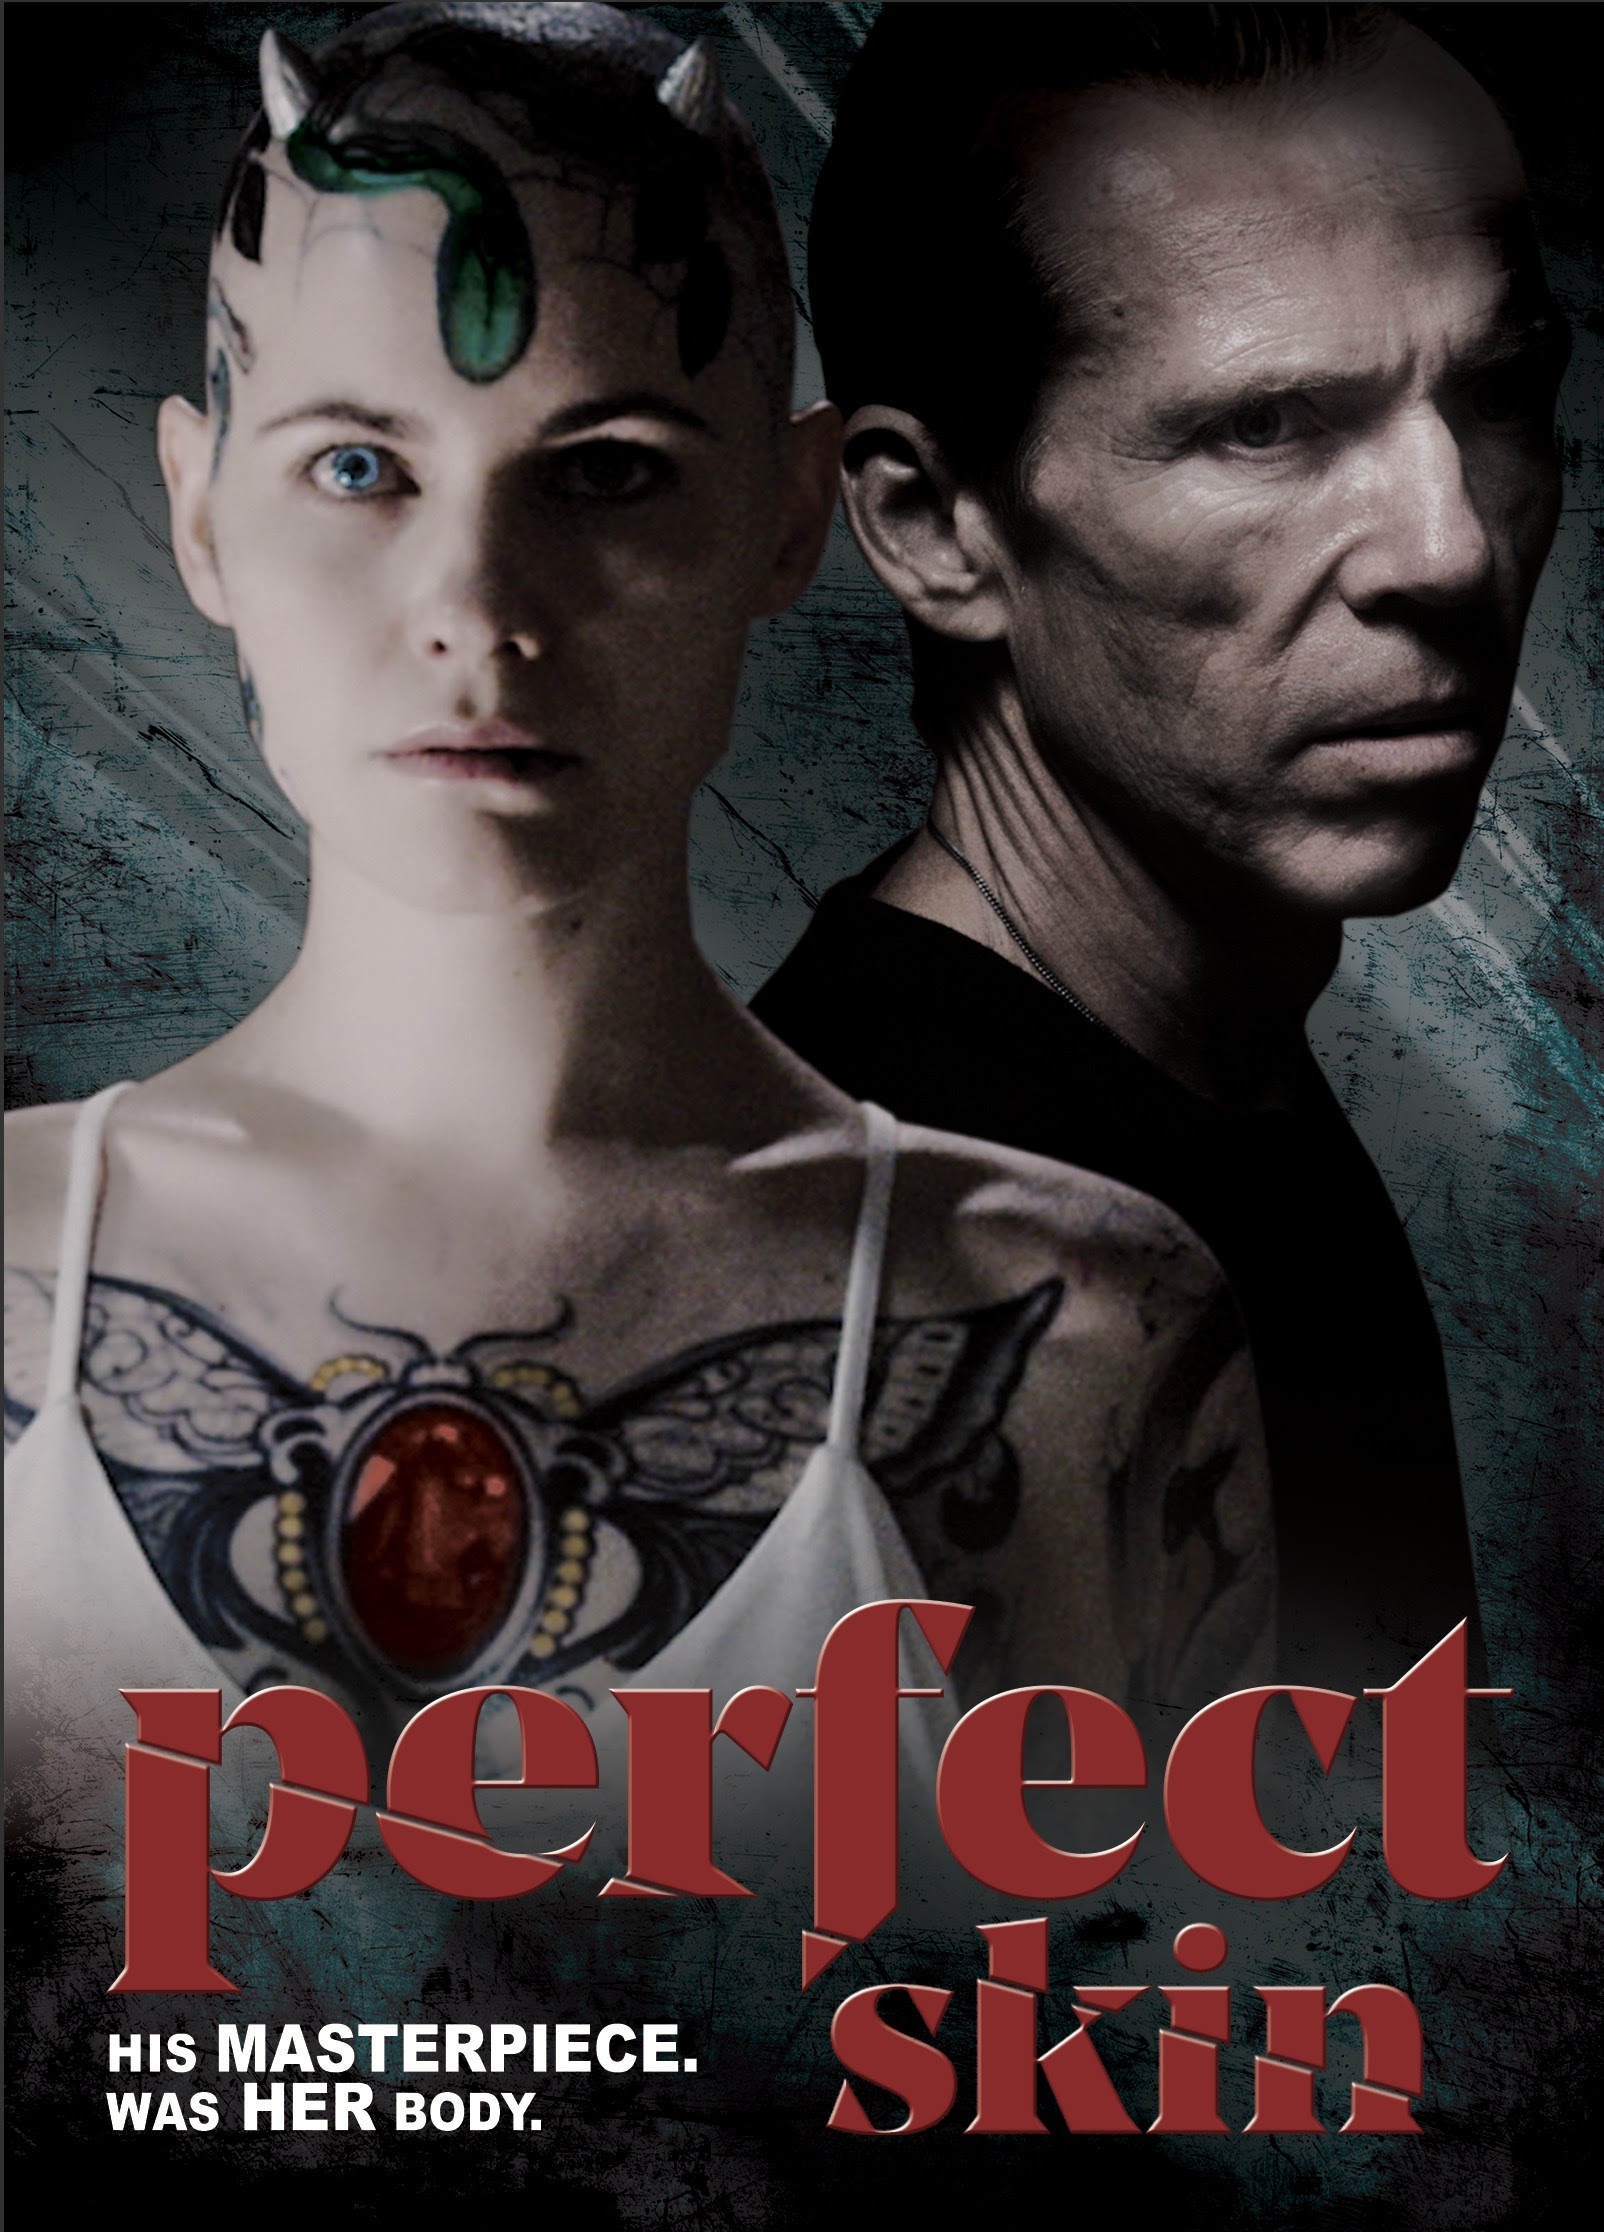 Film Review: PERFECT SKIN (2018)